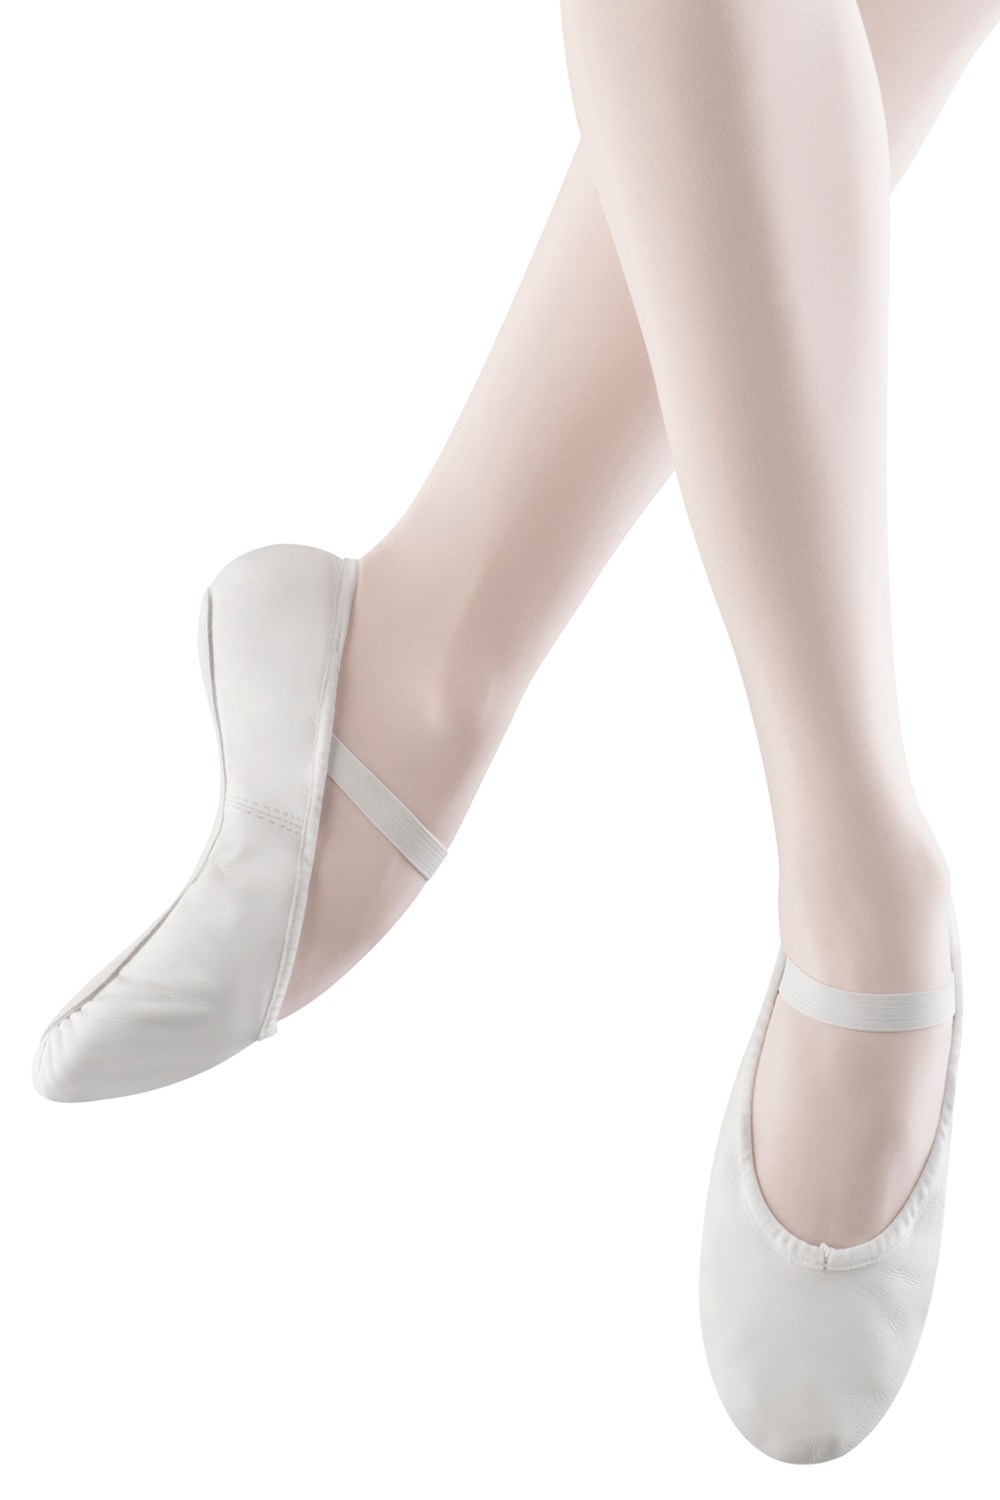 Arise - Girls Girl's Ballet Shoes